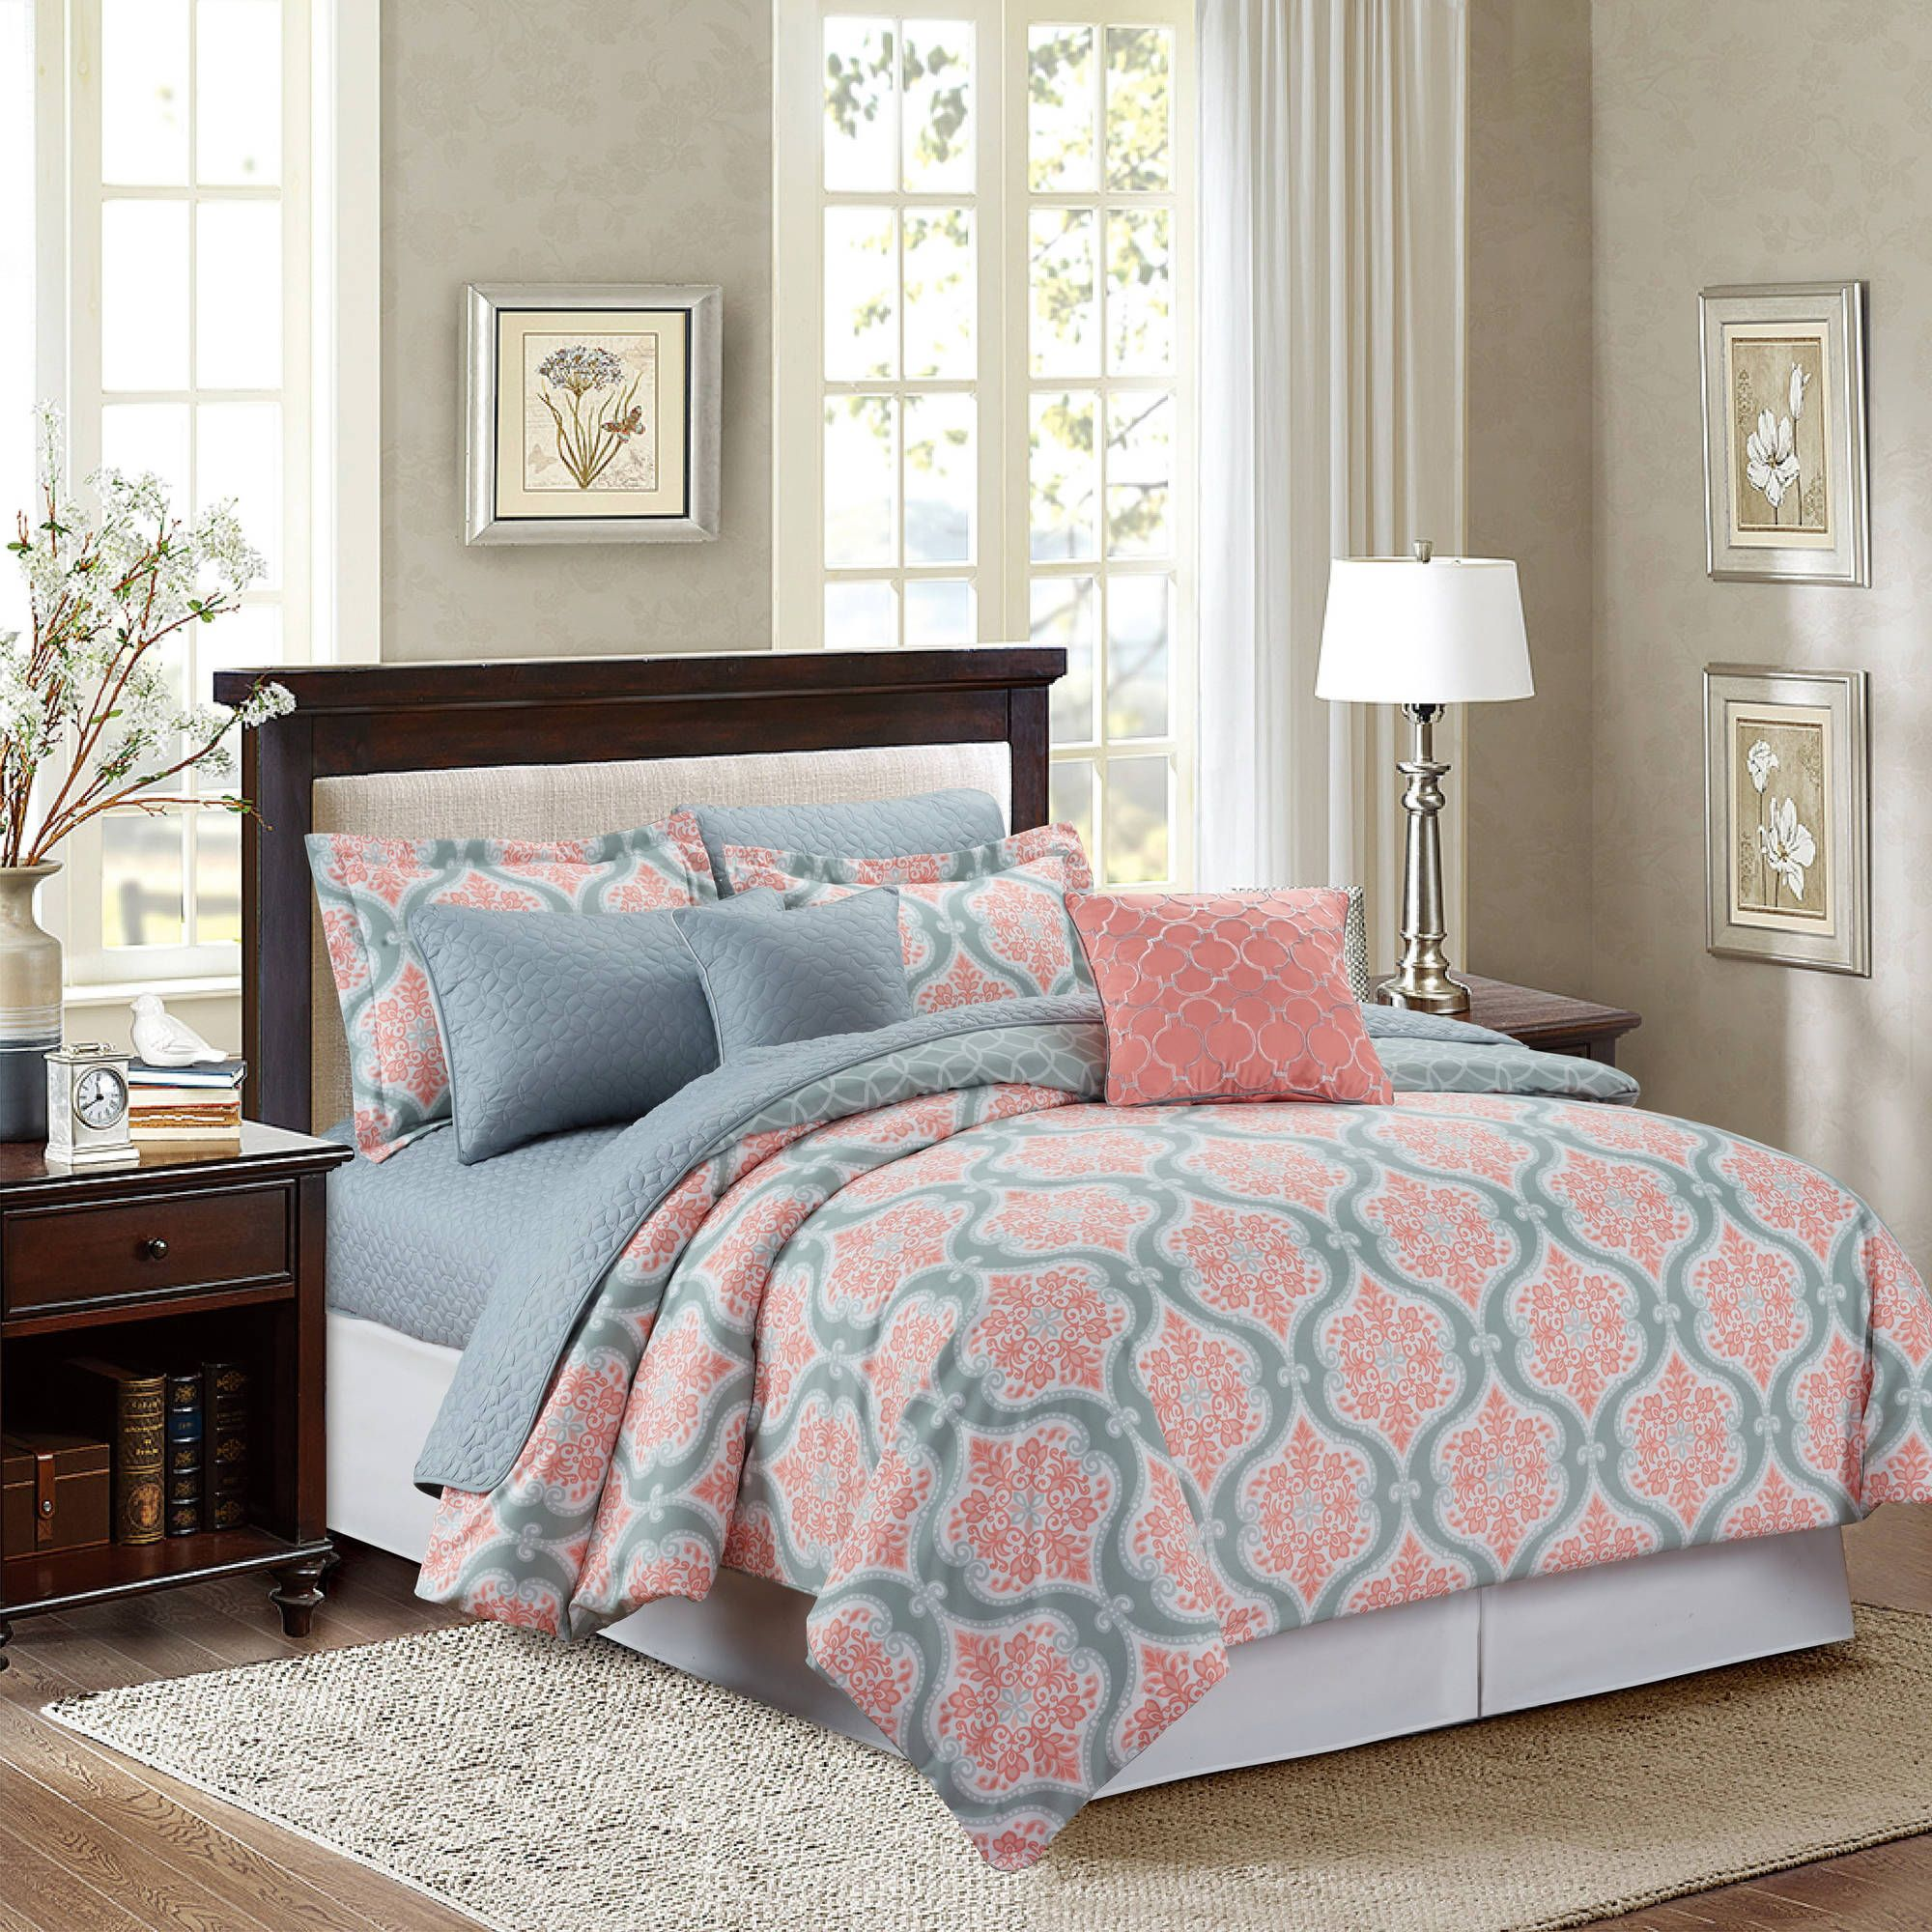 Interesting Decorative Bedding With Comfortable Coral Comforter